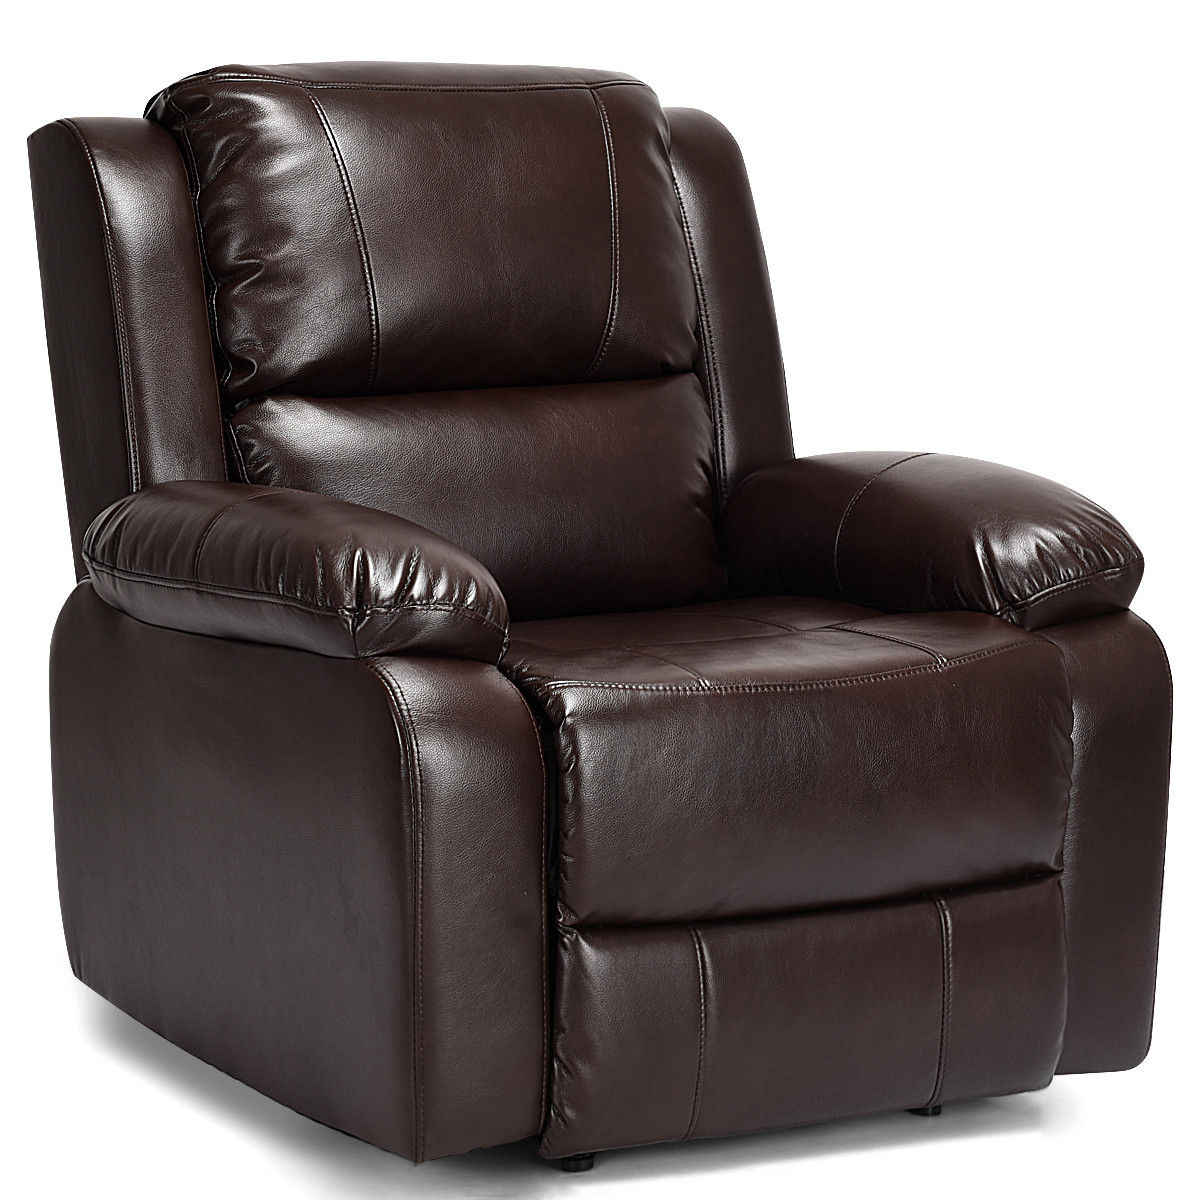 Costway Manual Recliner Sofa Lounge Chair PU Leather Home Theater Padded Reclining Brown